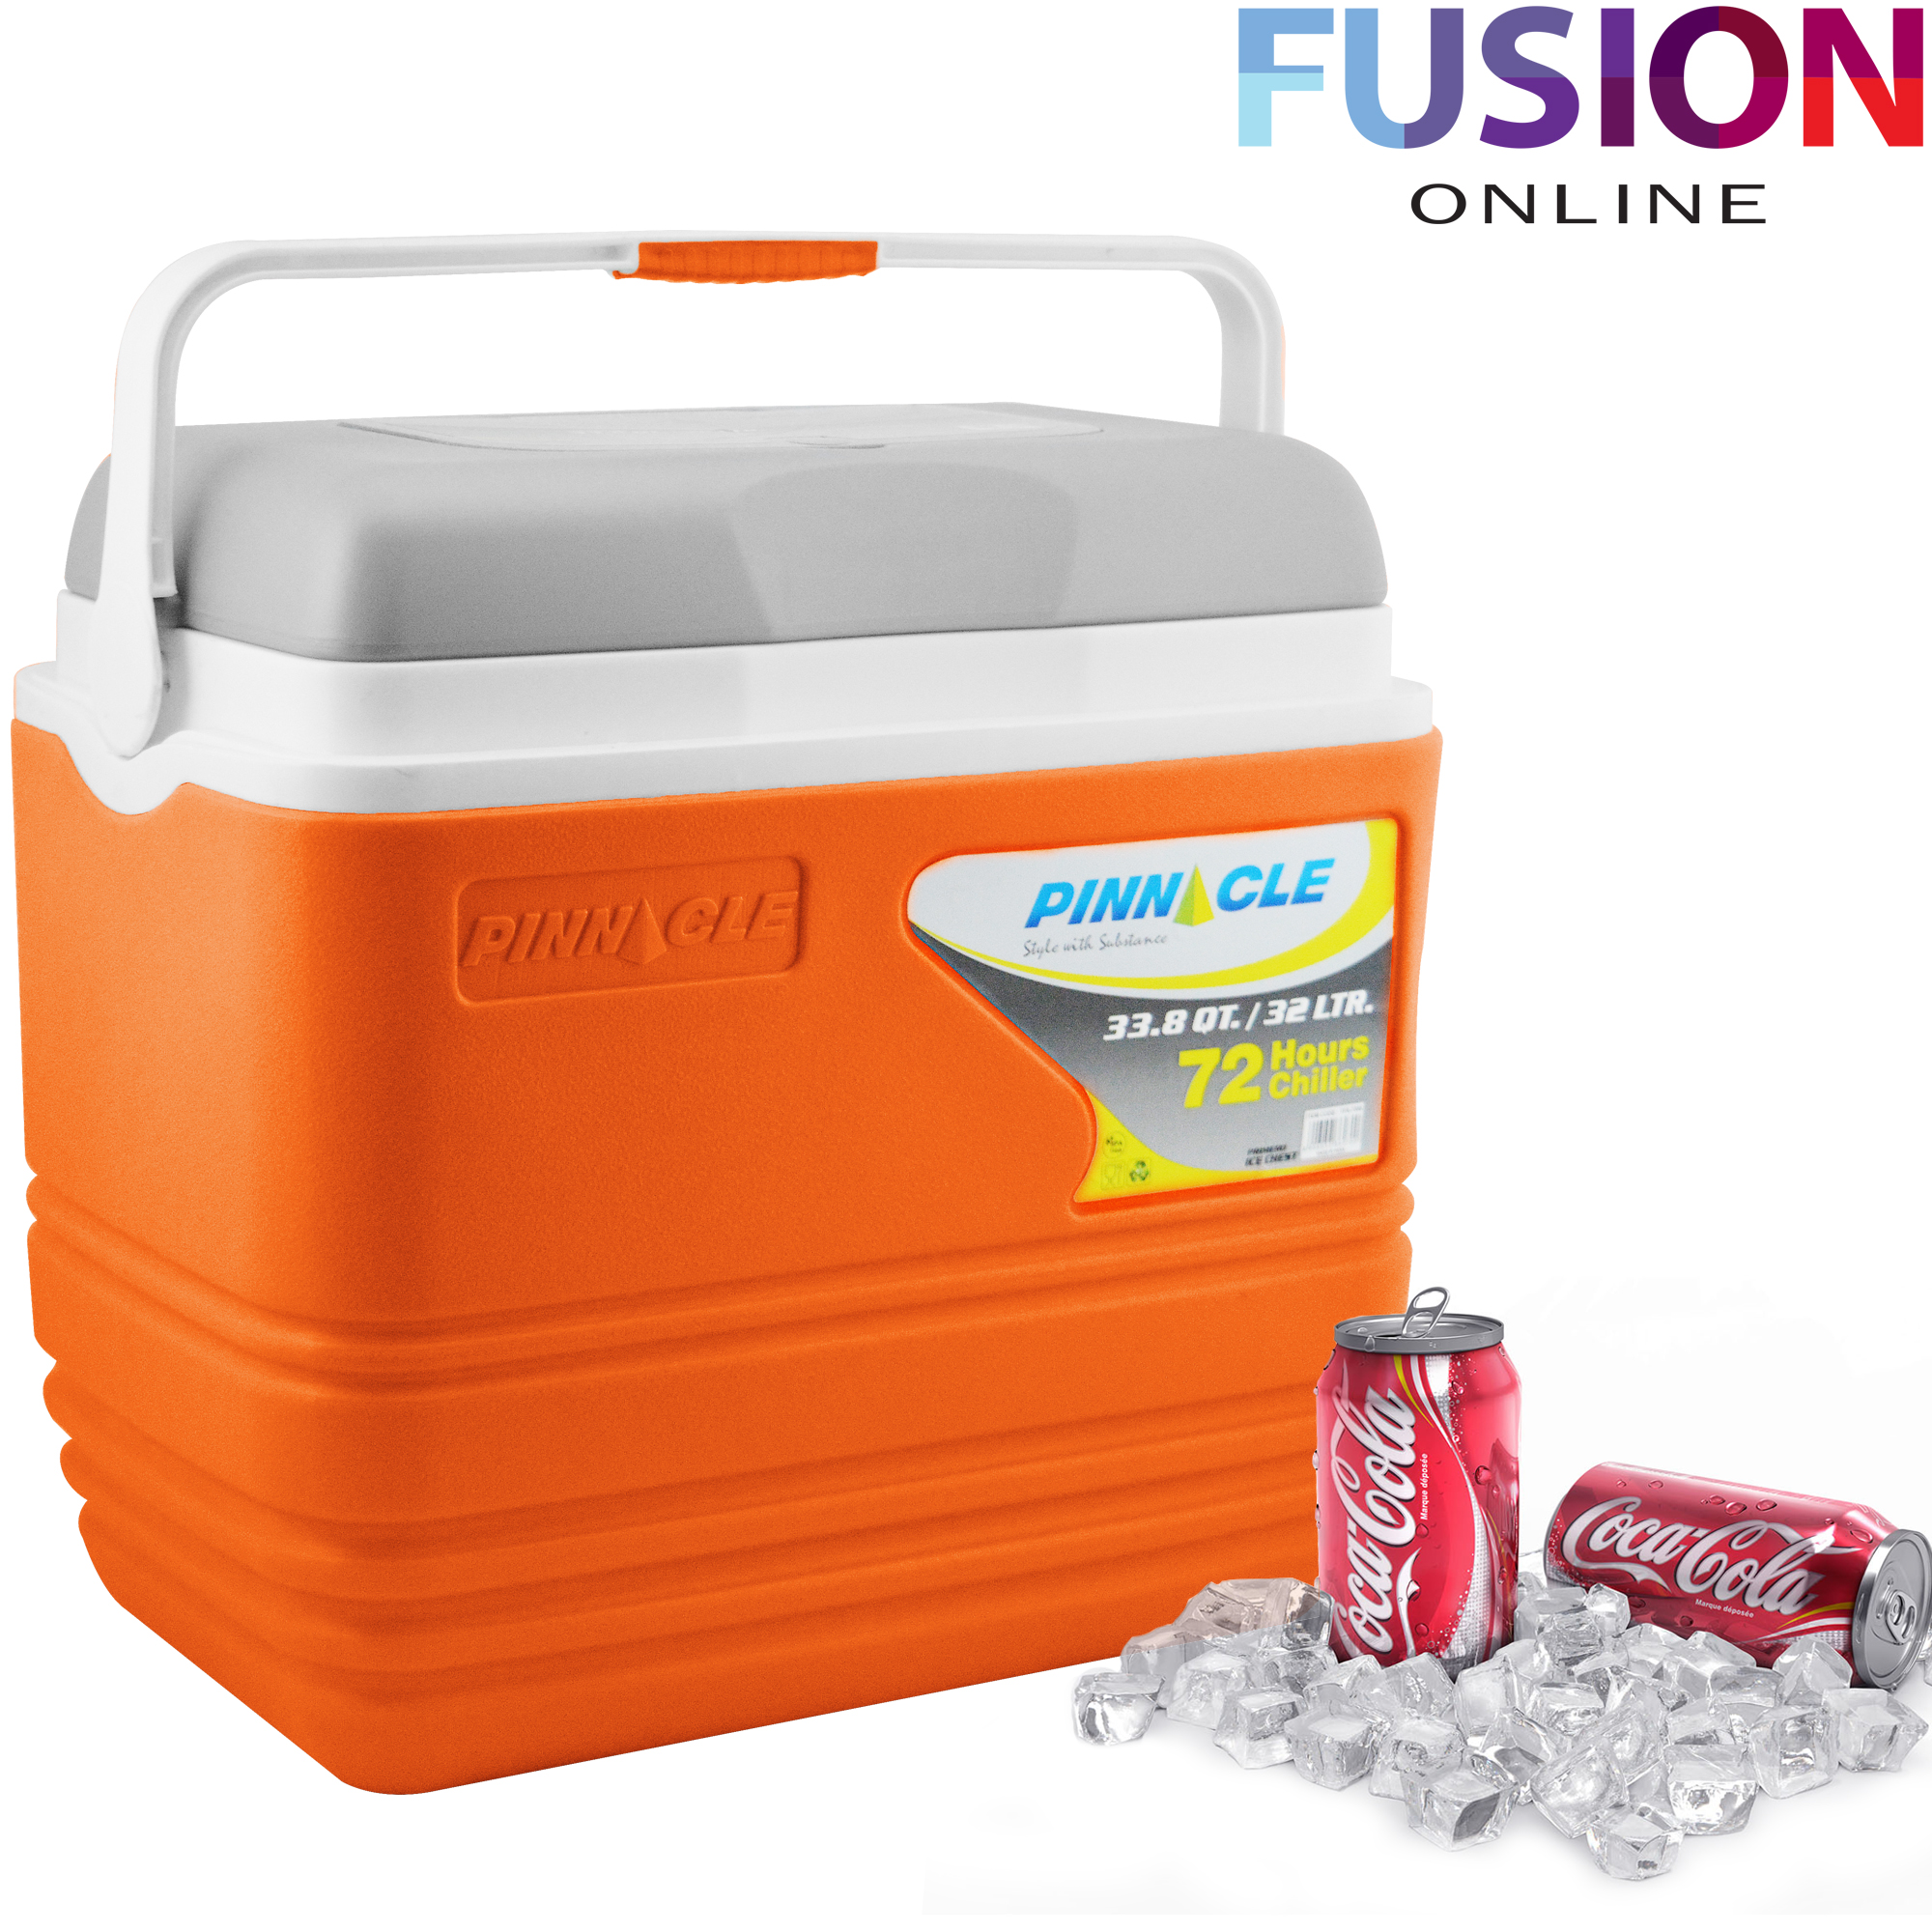 Insulated Freezer Bags For Travel